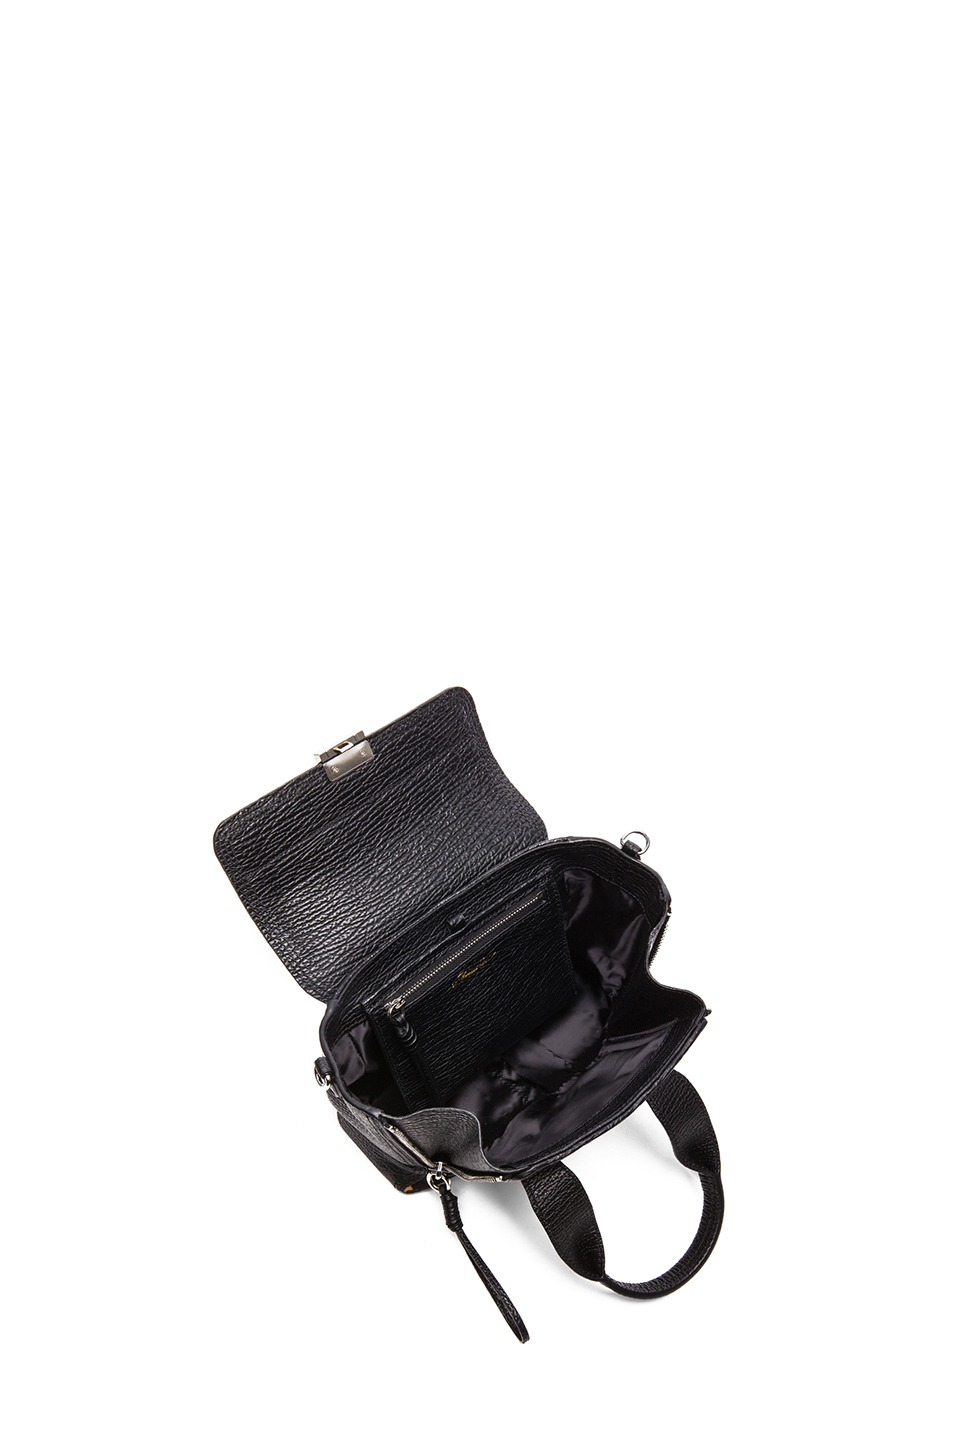 3.1 phillip lim|Mini Pashli Satchel in Natural & Black